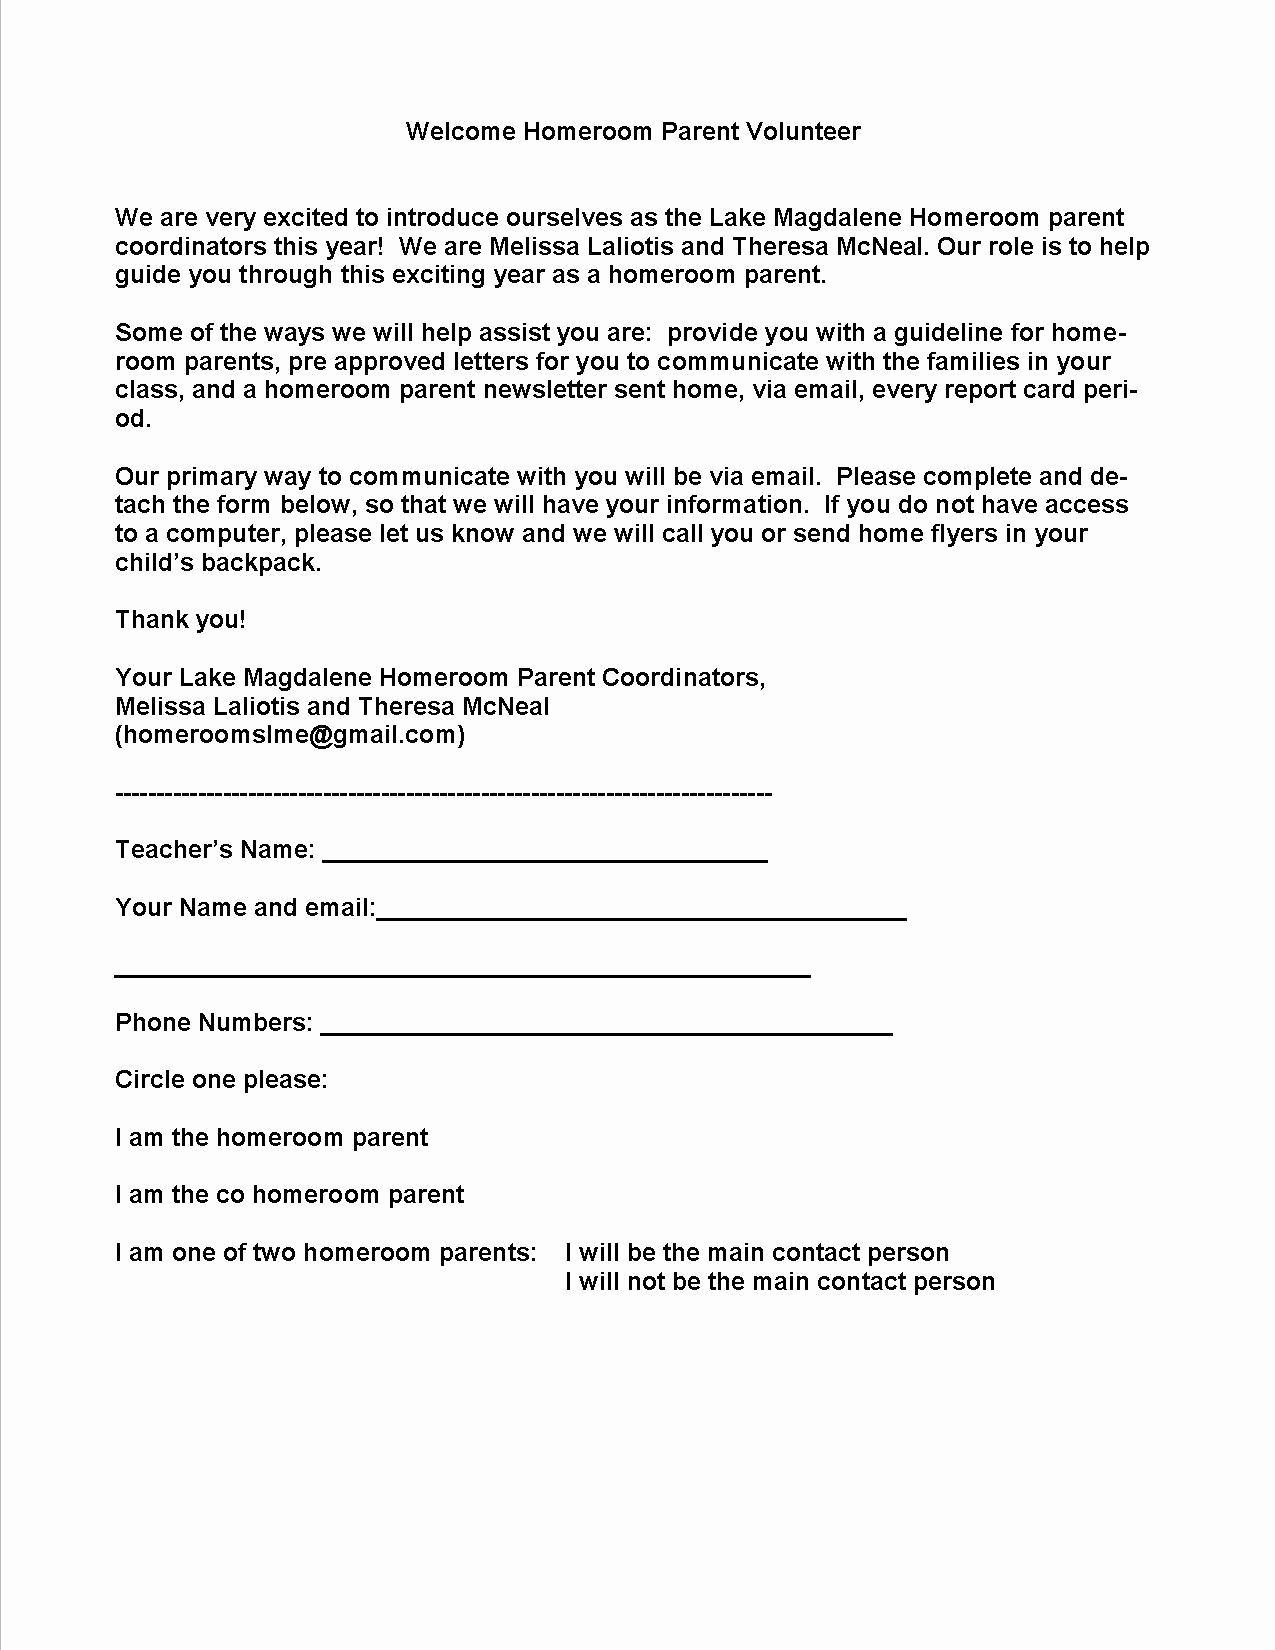 download new letter for a friend job description of waitress duties resume medical student example skills and hobbies